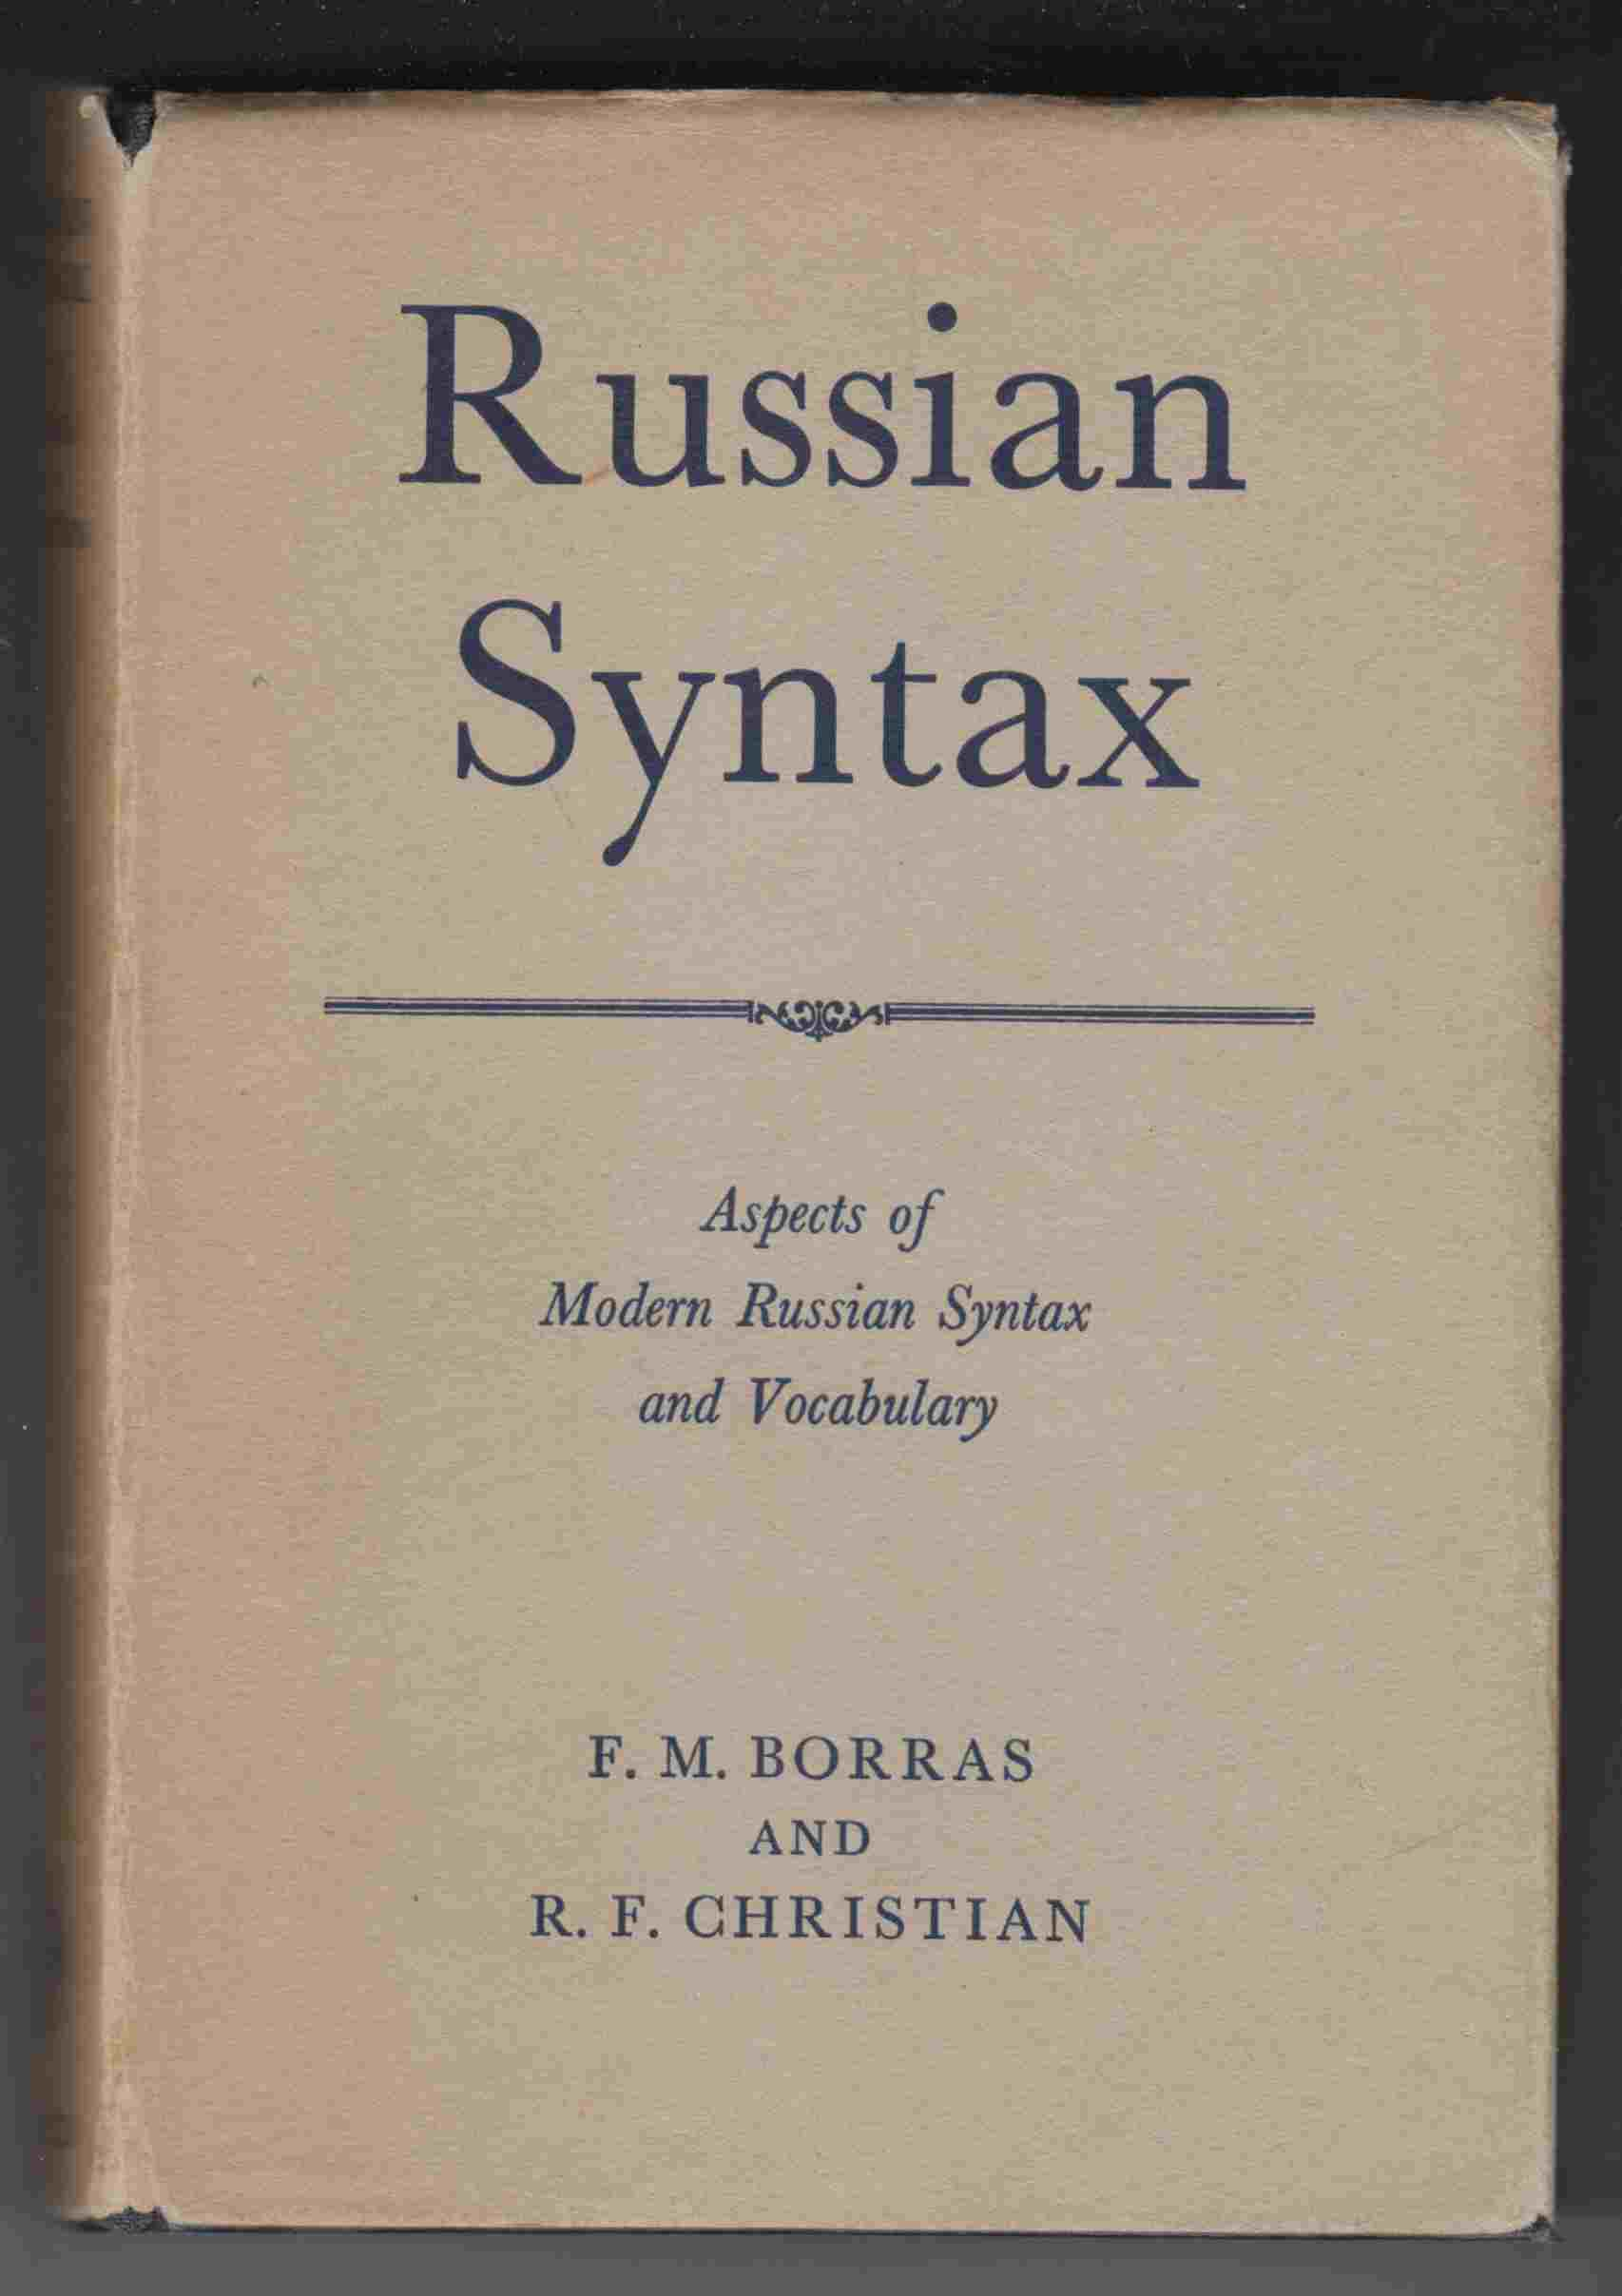 Image for Russian Syntax Aspects of Modern Russian Syntax and Vocabulary